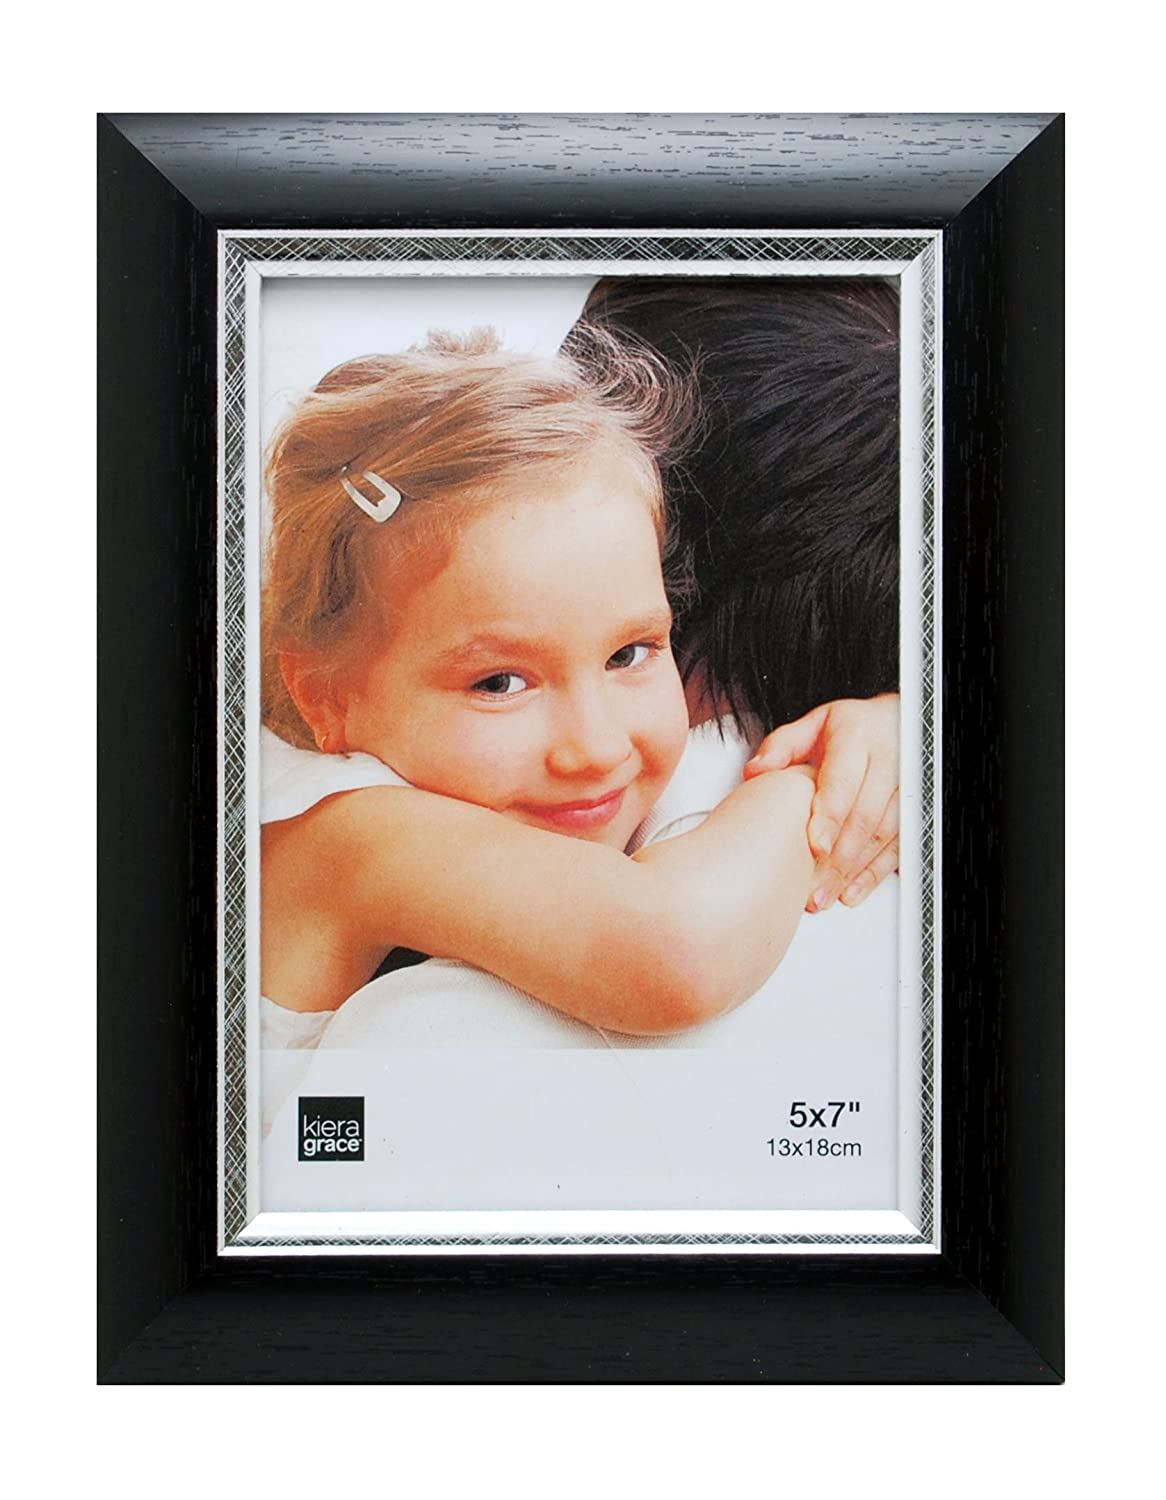 Kiera Grace Karla Picture Frame Black with Brushed Silver Line AZ Home and Gifts PH43840-9 5 by 7 Inch